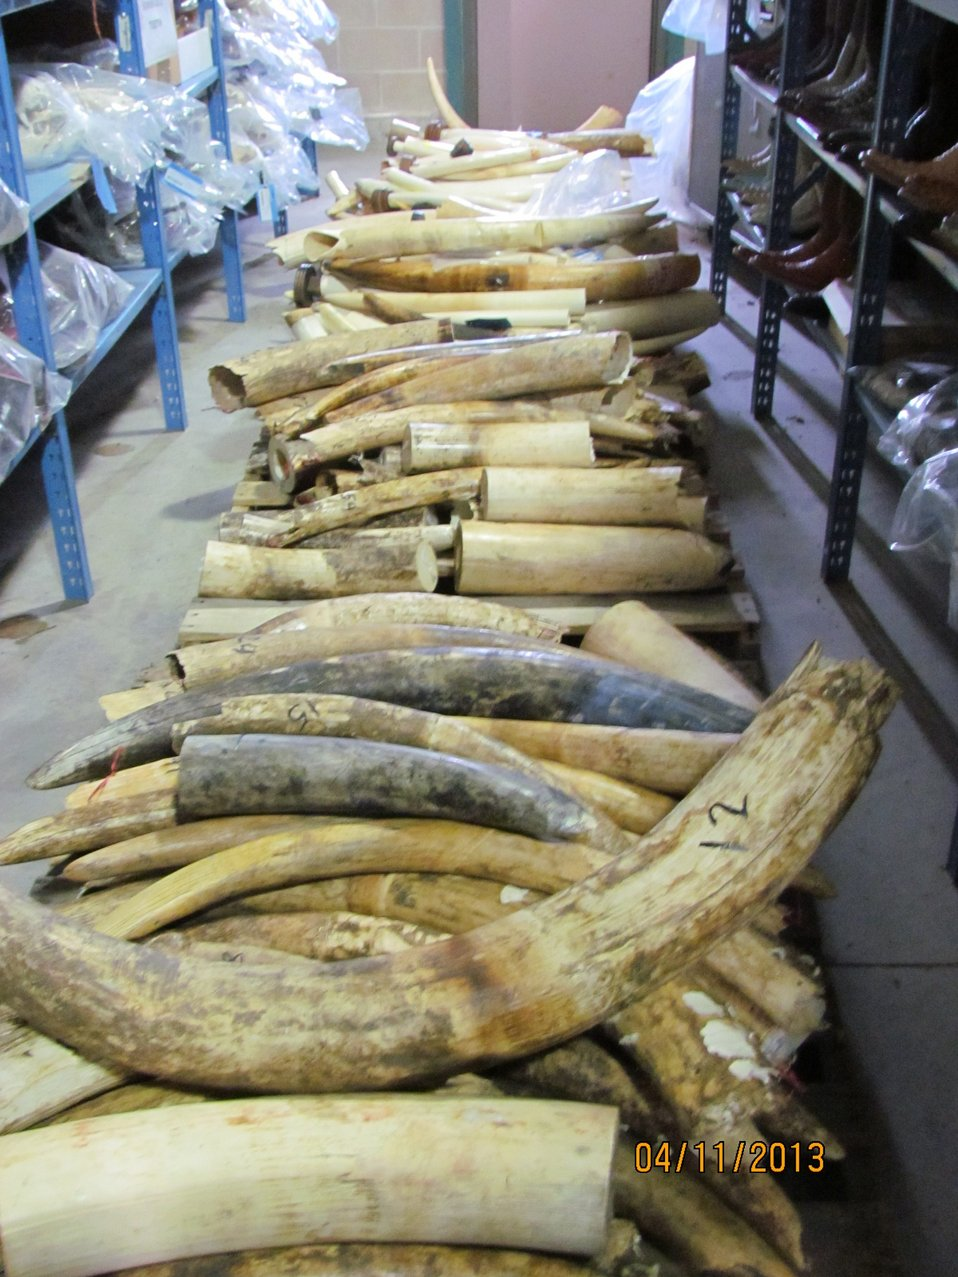 Pallet of raw tusks